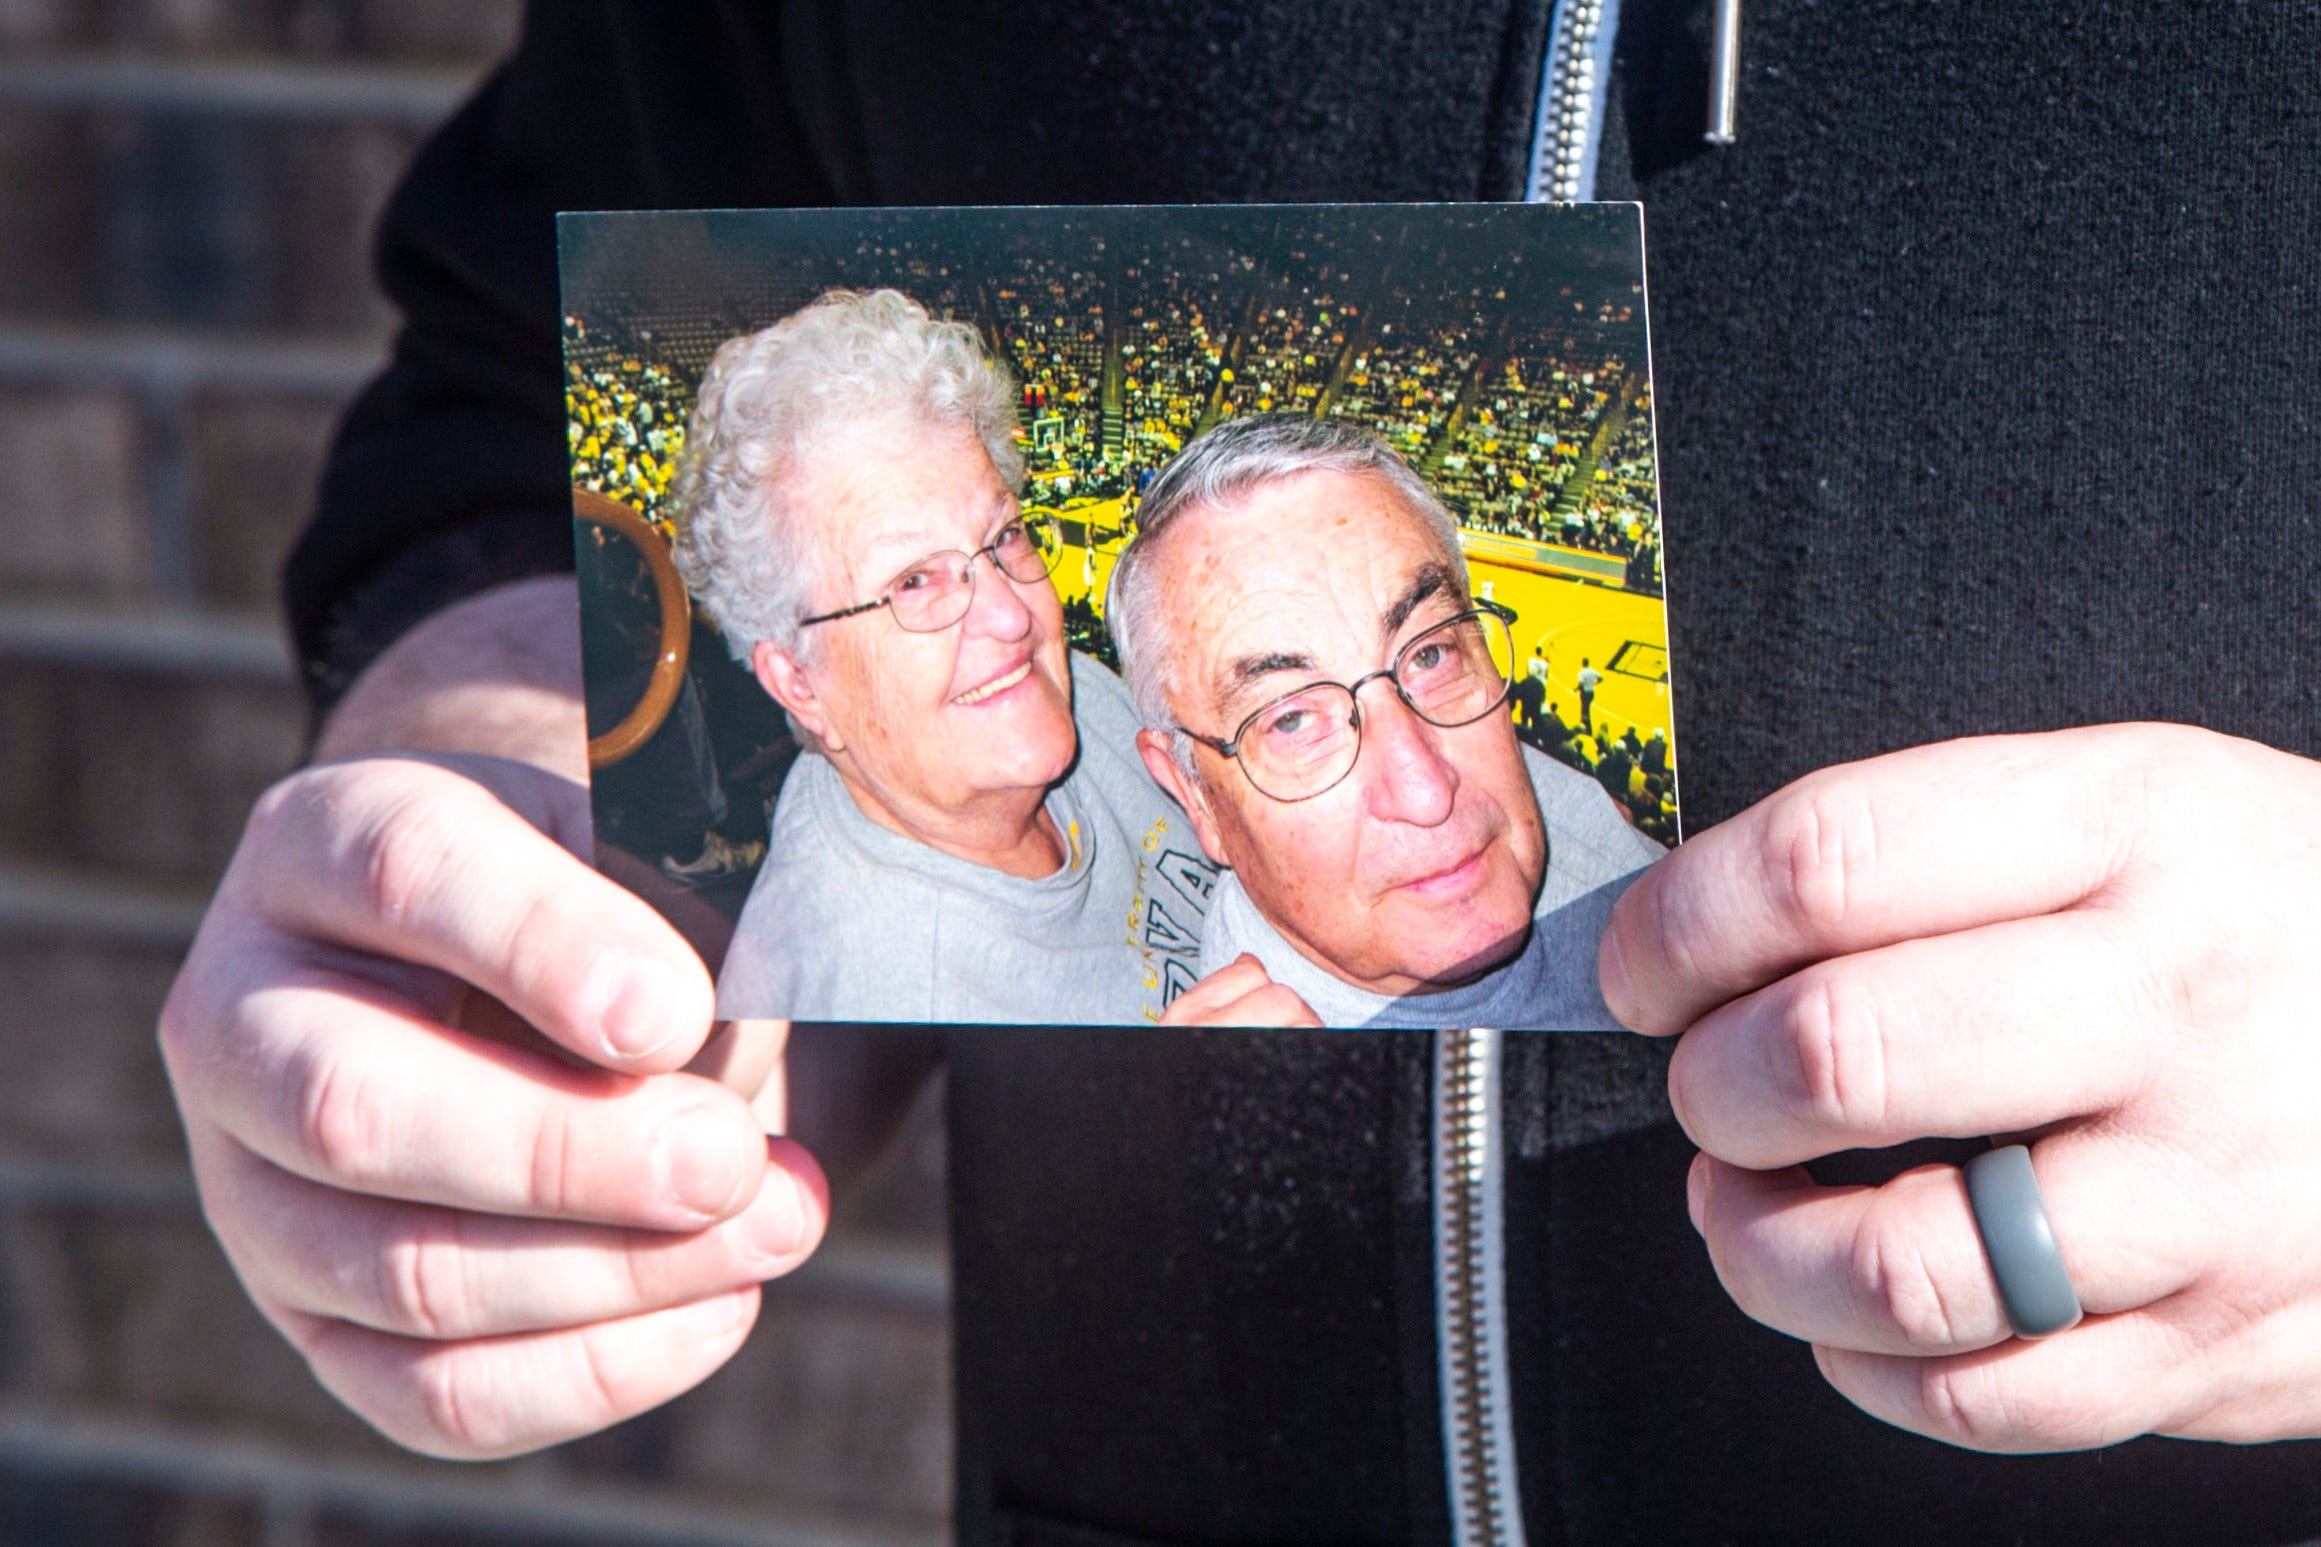 Adam Skibbe holds a photo of his grandparents Jane and Norry Gronert, Sunday, March 7, 2021, in Tiffin, Iowa. The two were attending a men's basketball game at Carver-Hawkeye Arena.